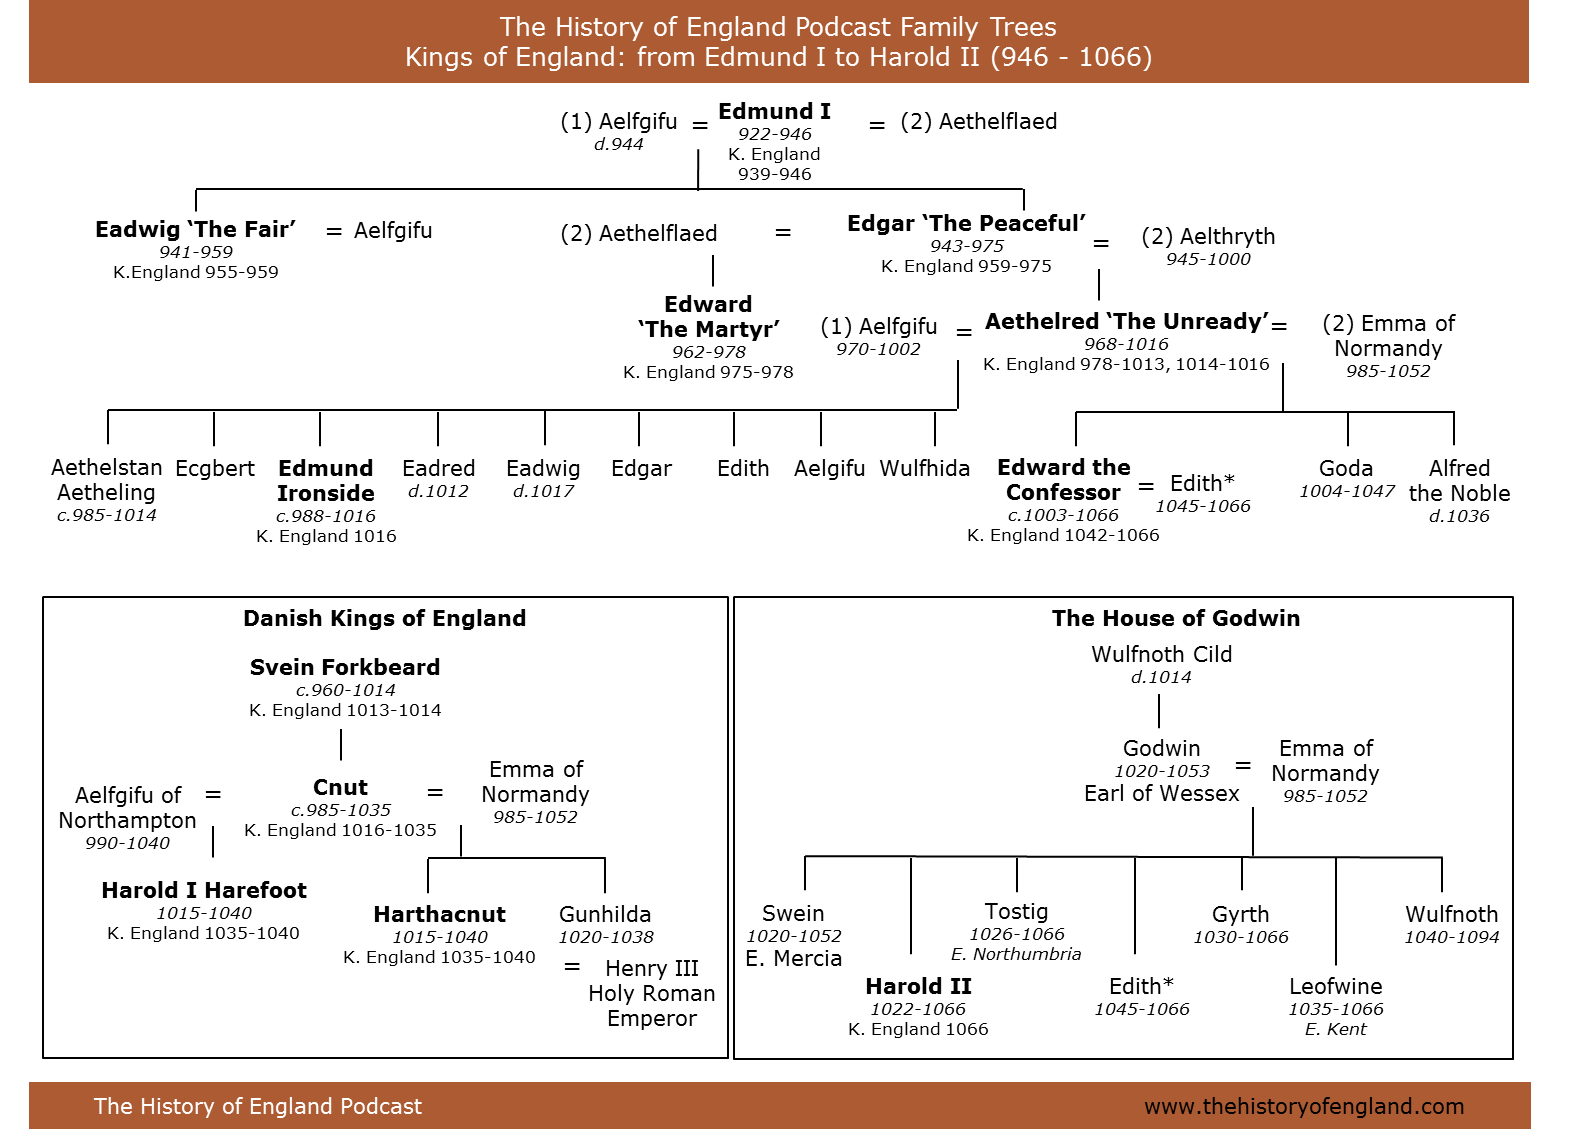 family trees 500 1066 the history of england family tree of anglo saxona nd danish kings of england 946 1066